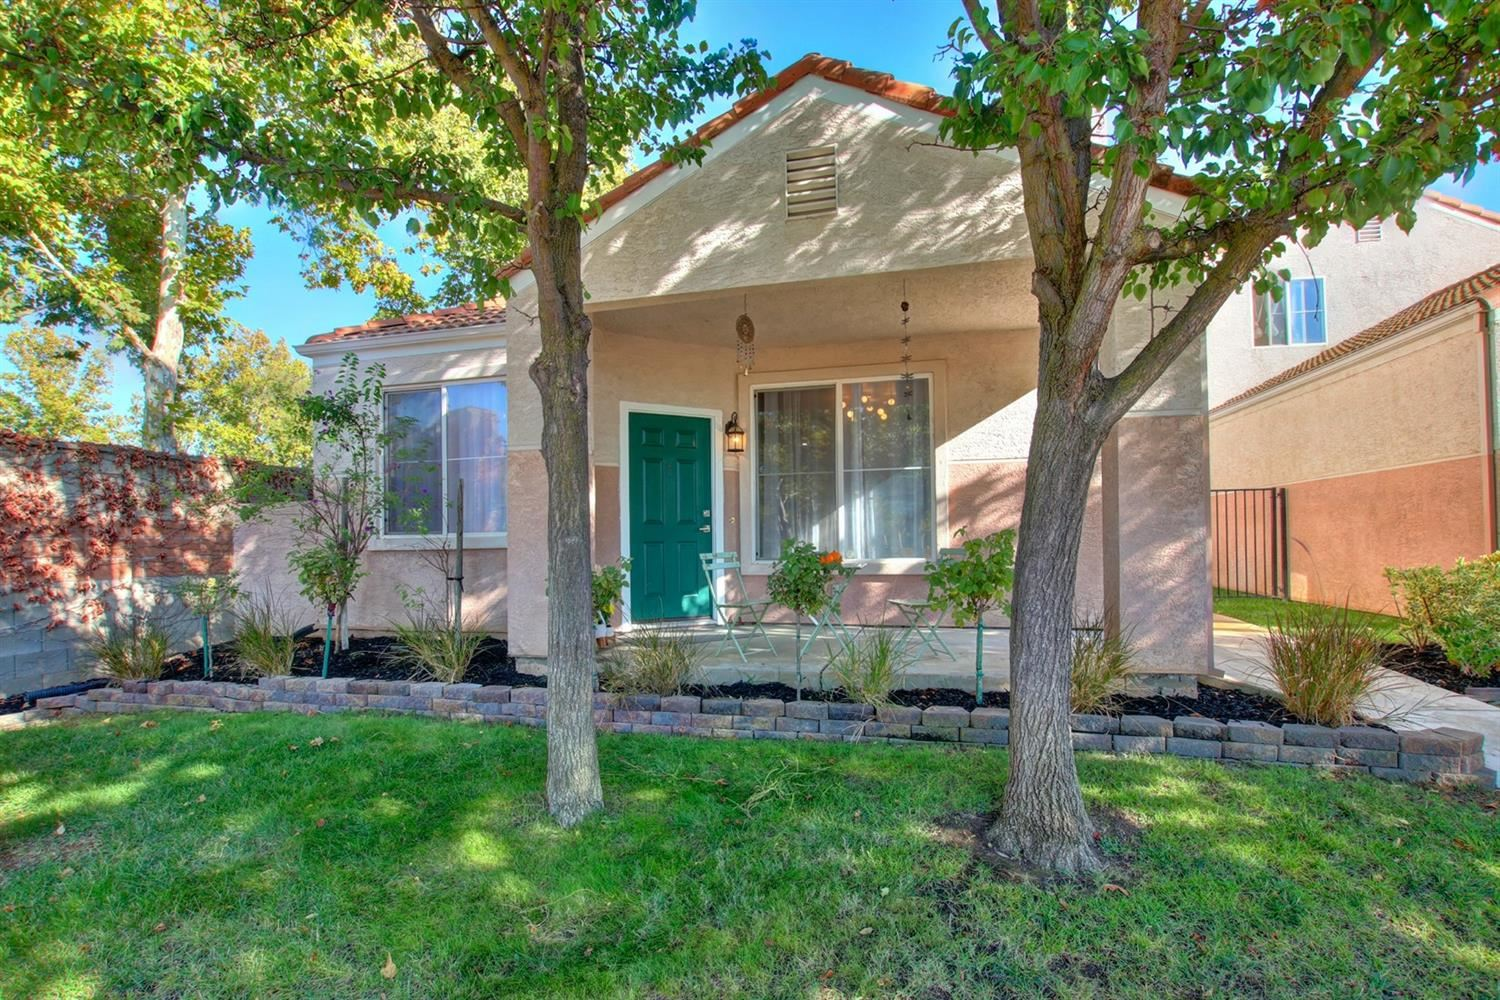 Photo of 9105 Haussman Street, Elk Grove, CA 95758 (MLS # 20063797)